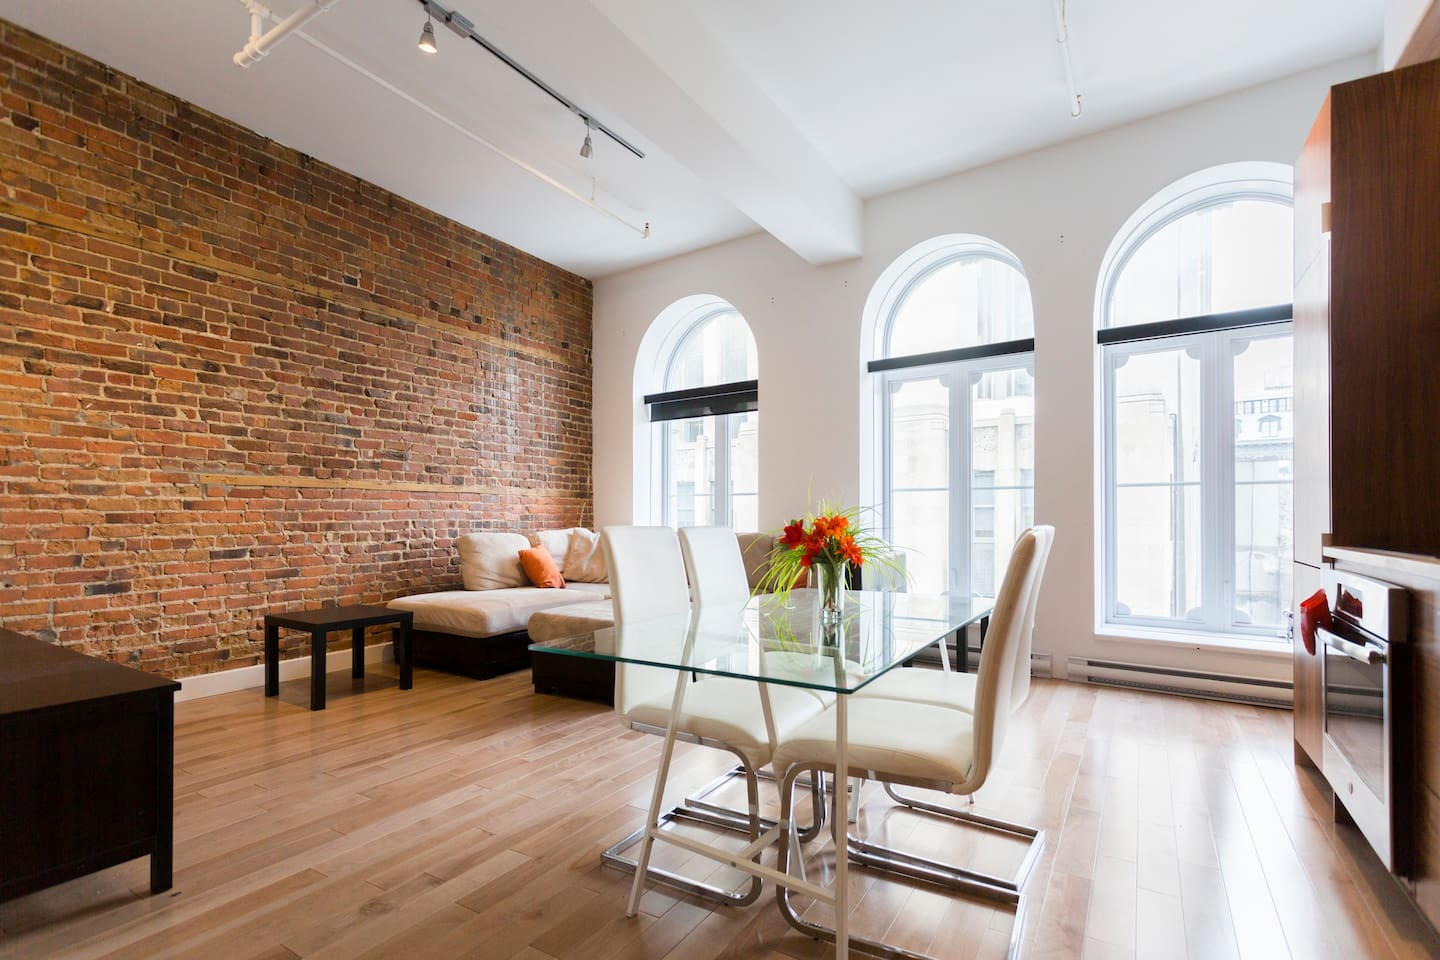 Great open-spaced loft with huge windows allowing lots of natural light